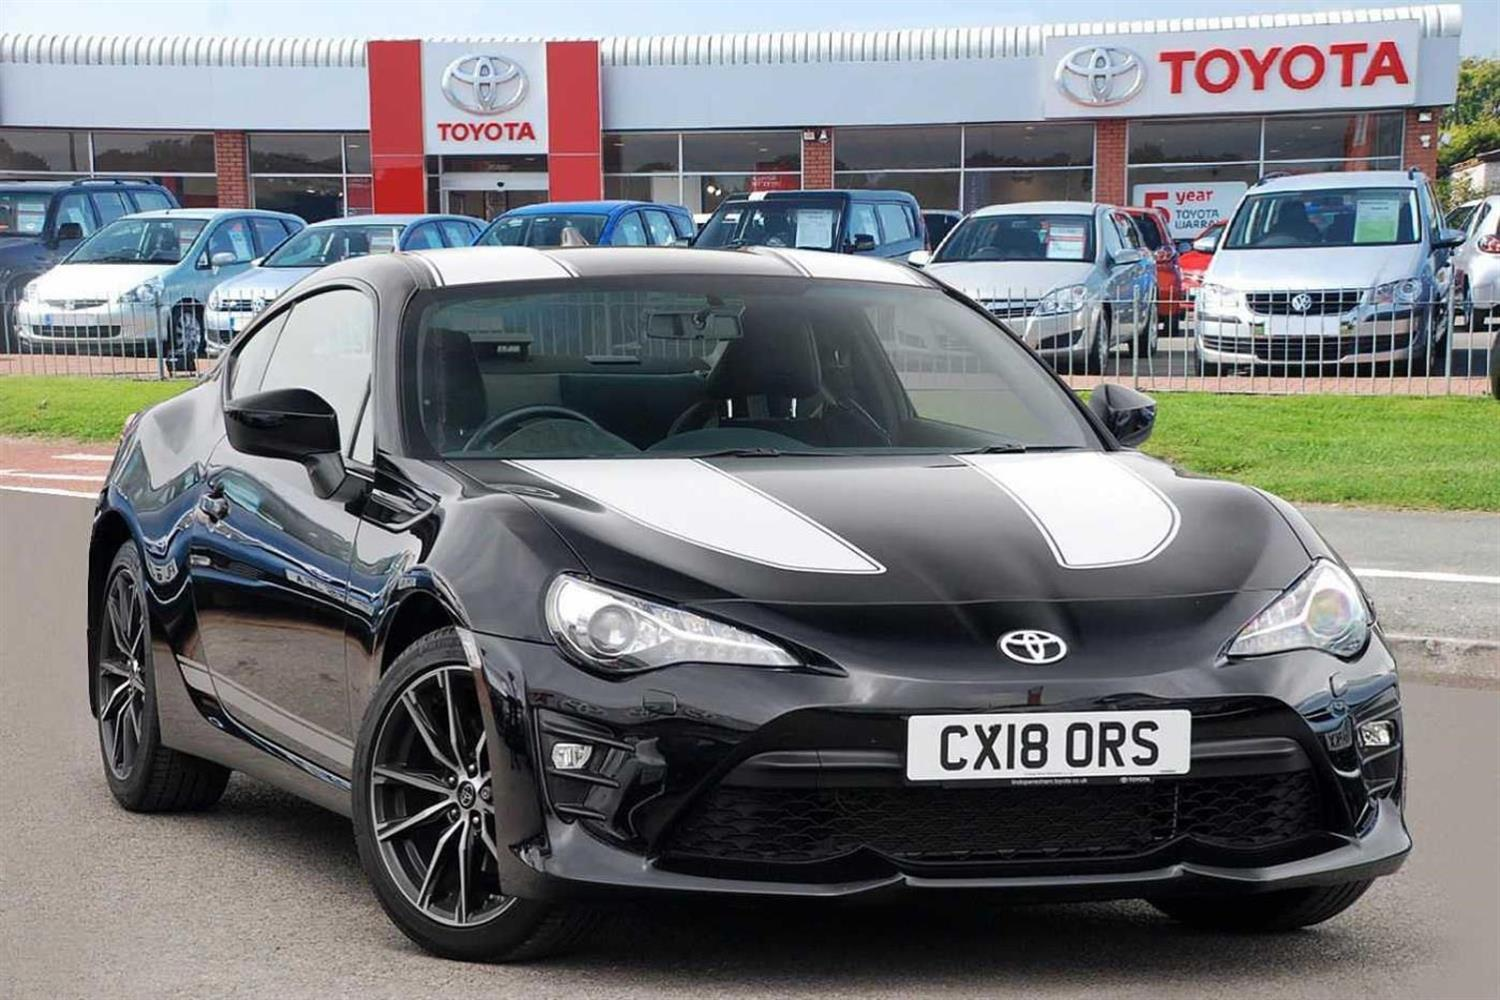 Toyota Gt86 2.0 PRO Coupe Petrol Black